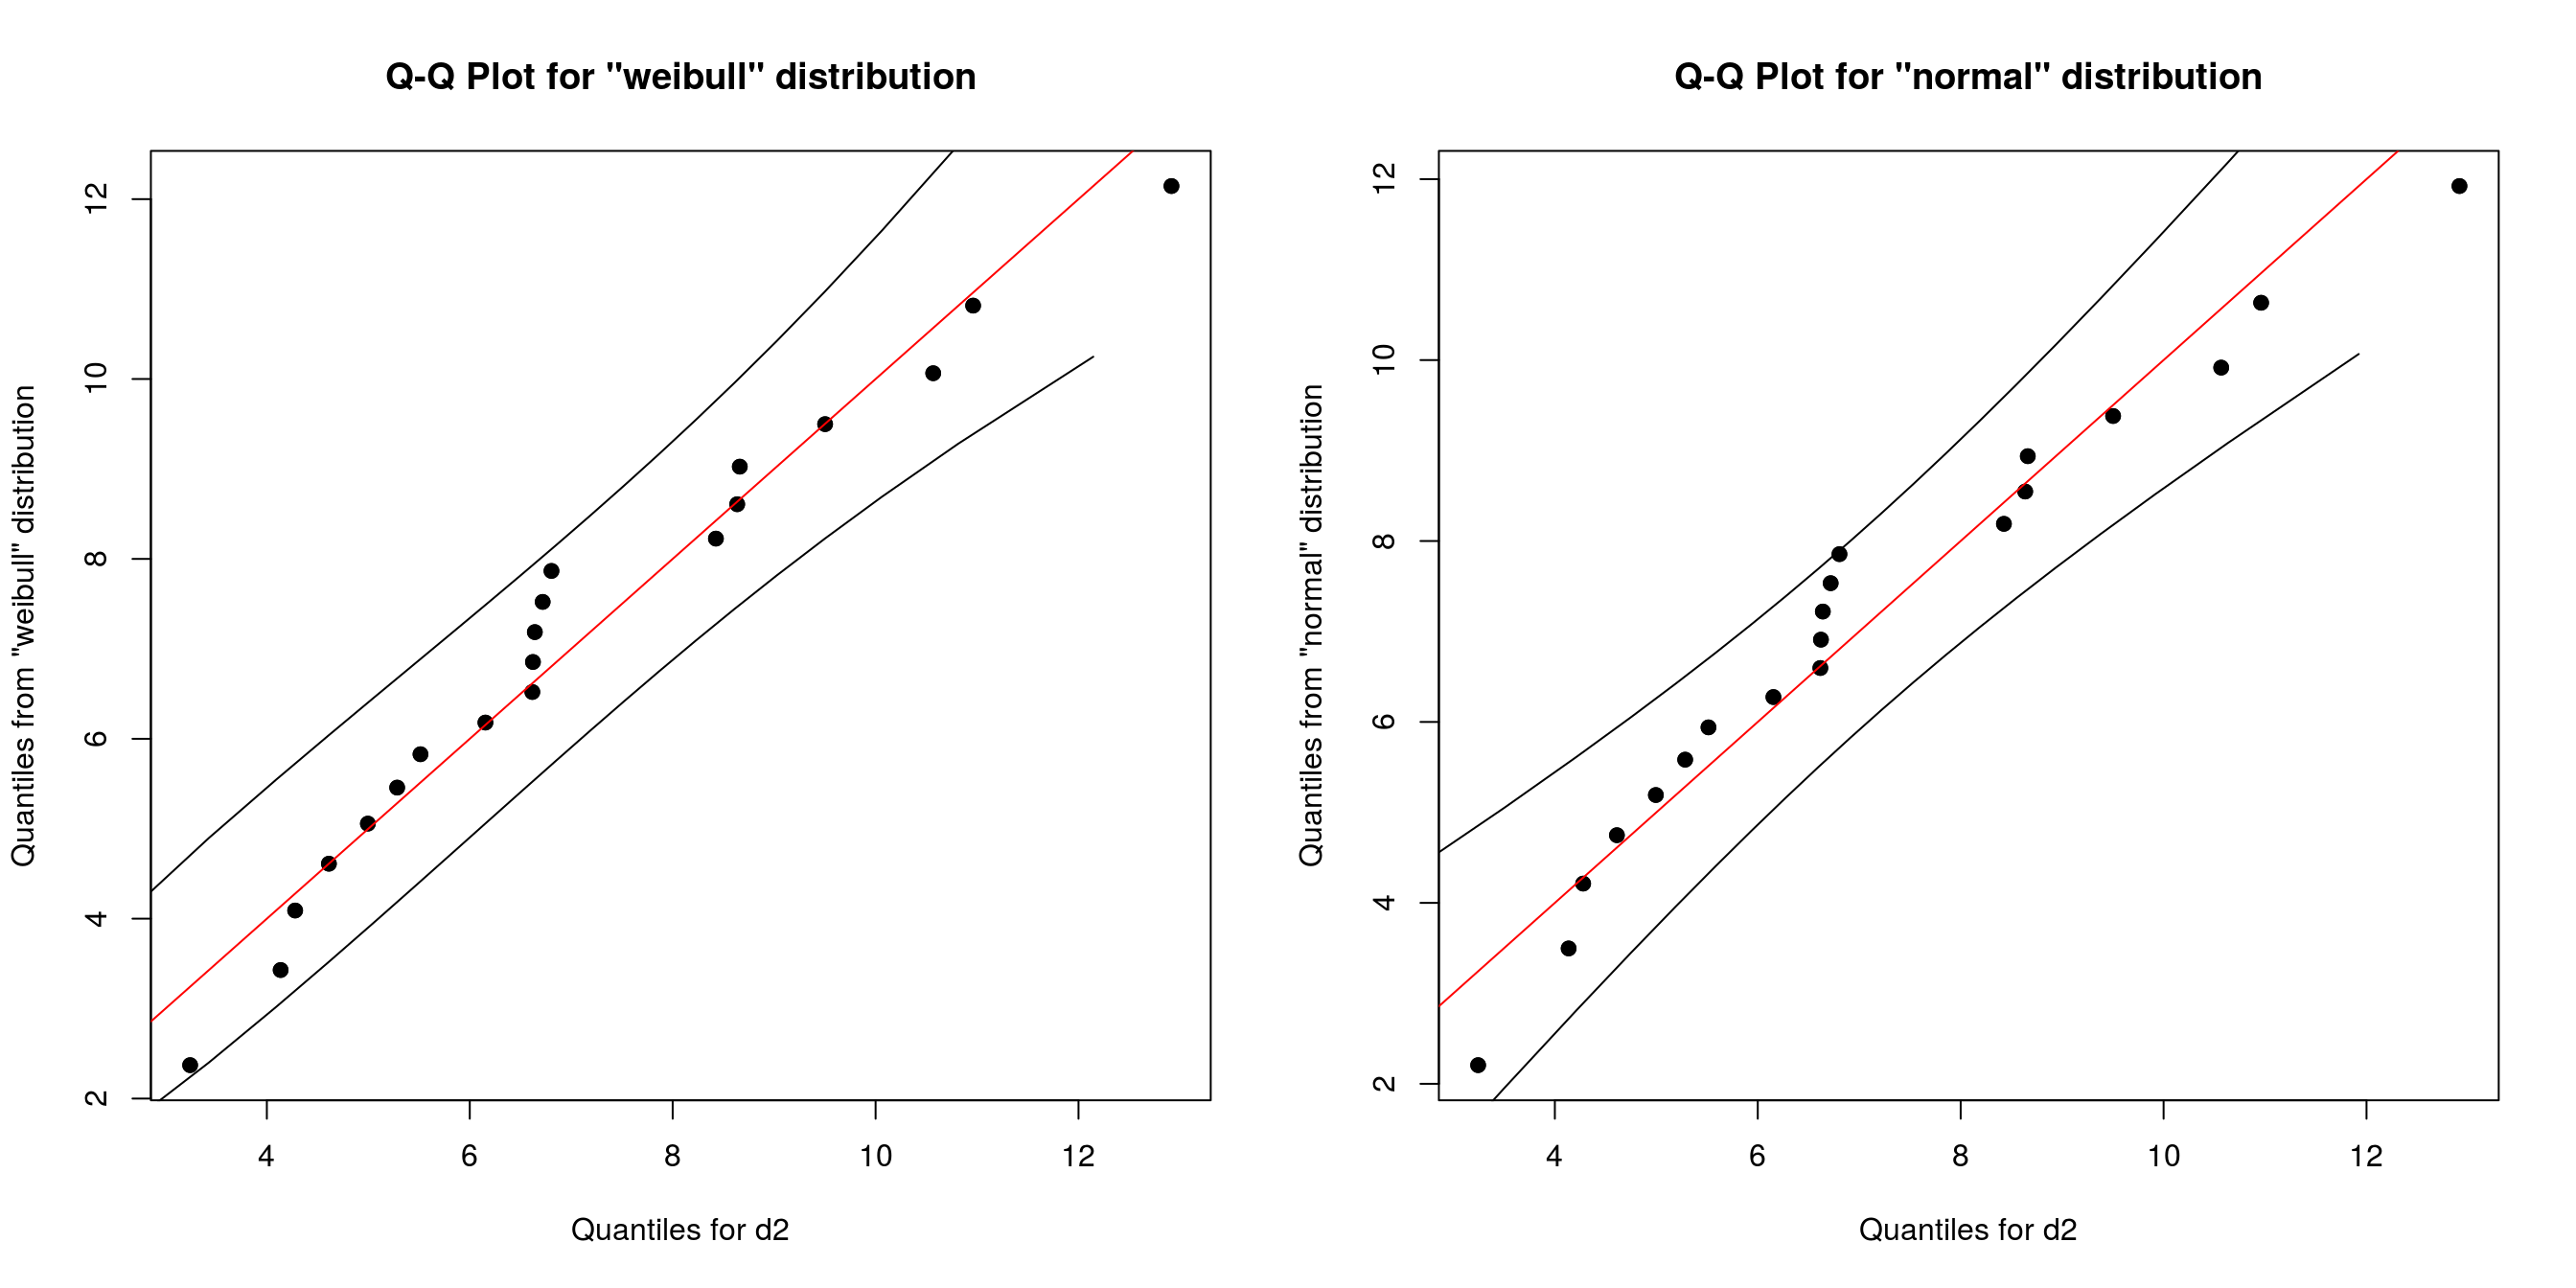 QQ-Plots for different distributions